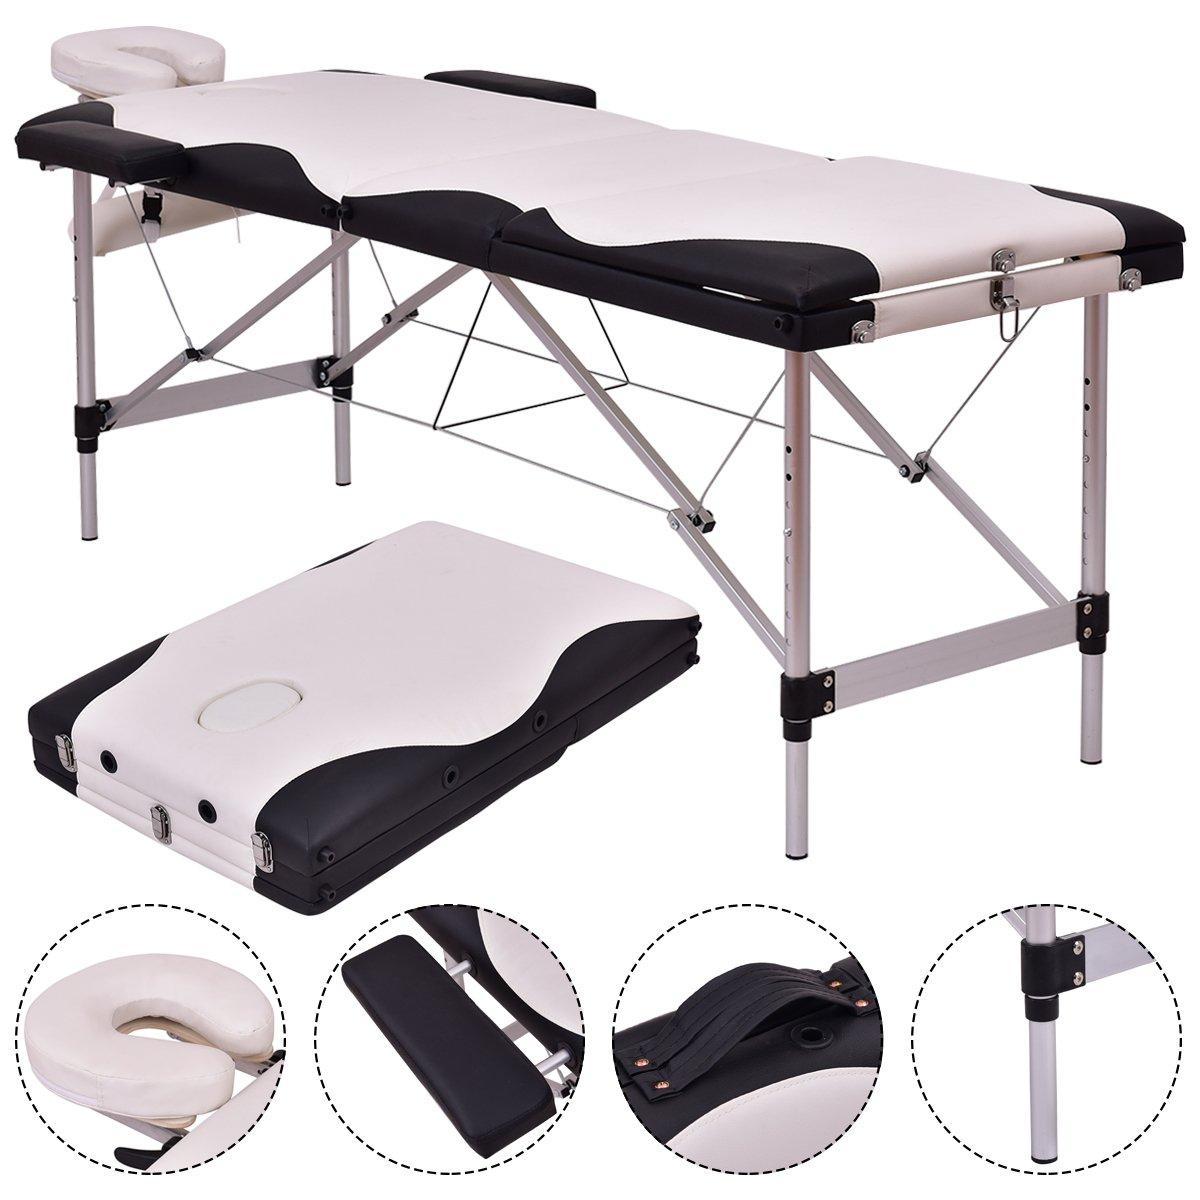 Merax Portable Massage Table 84 Folding Facial SPA Bed with Carrying Bag Black-Basic